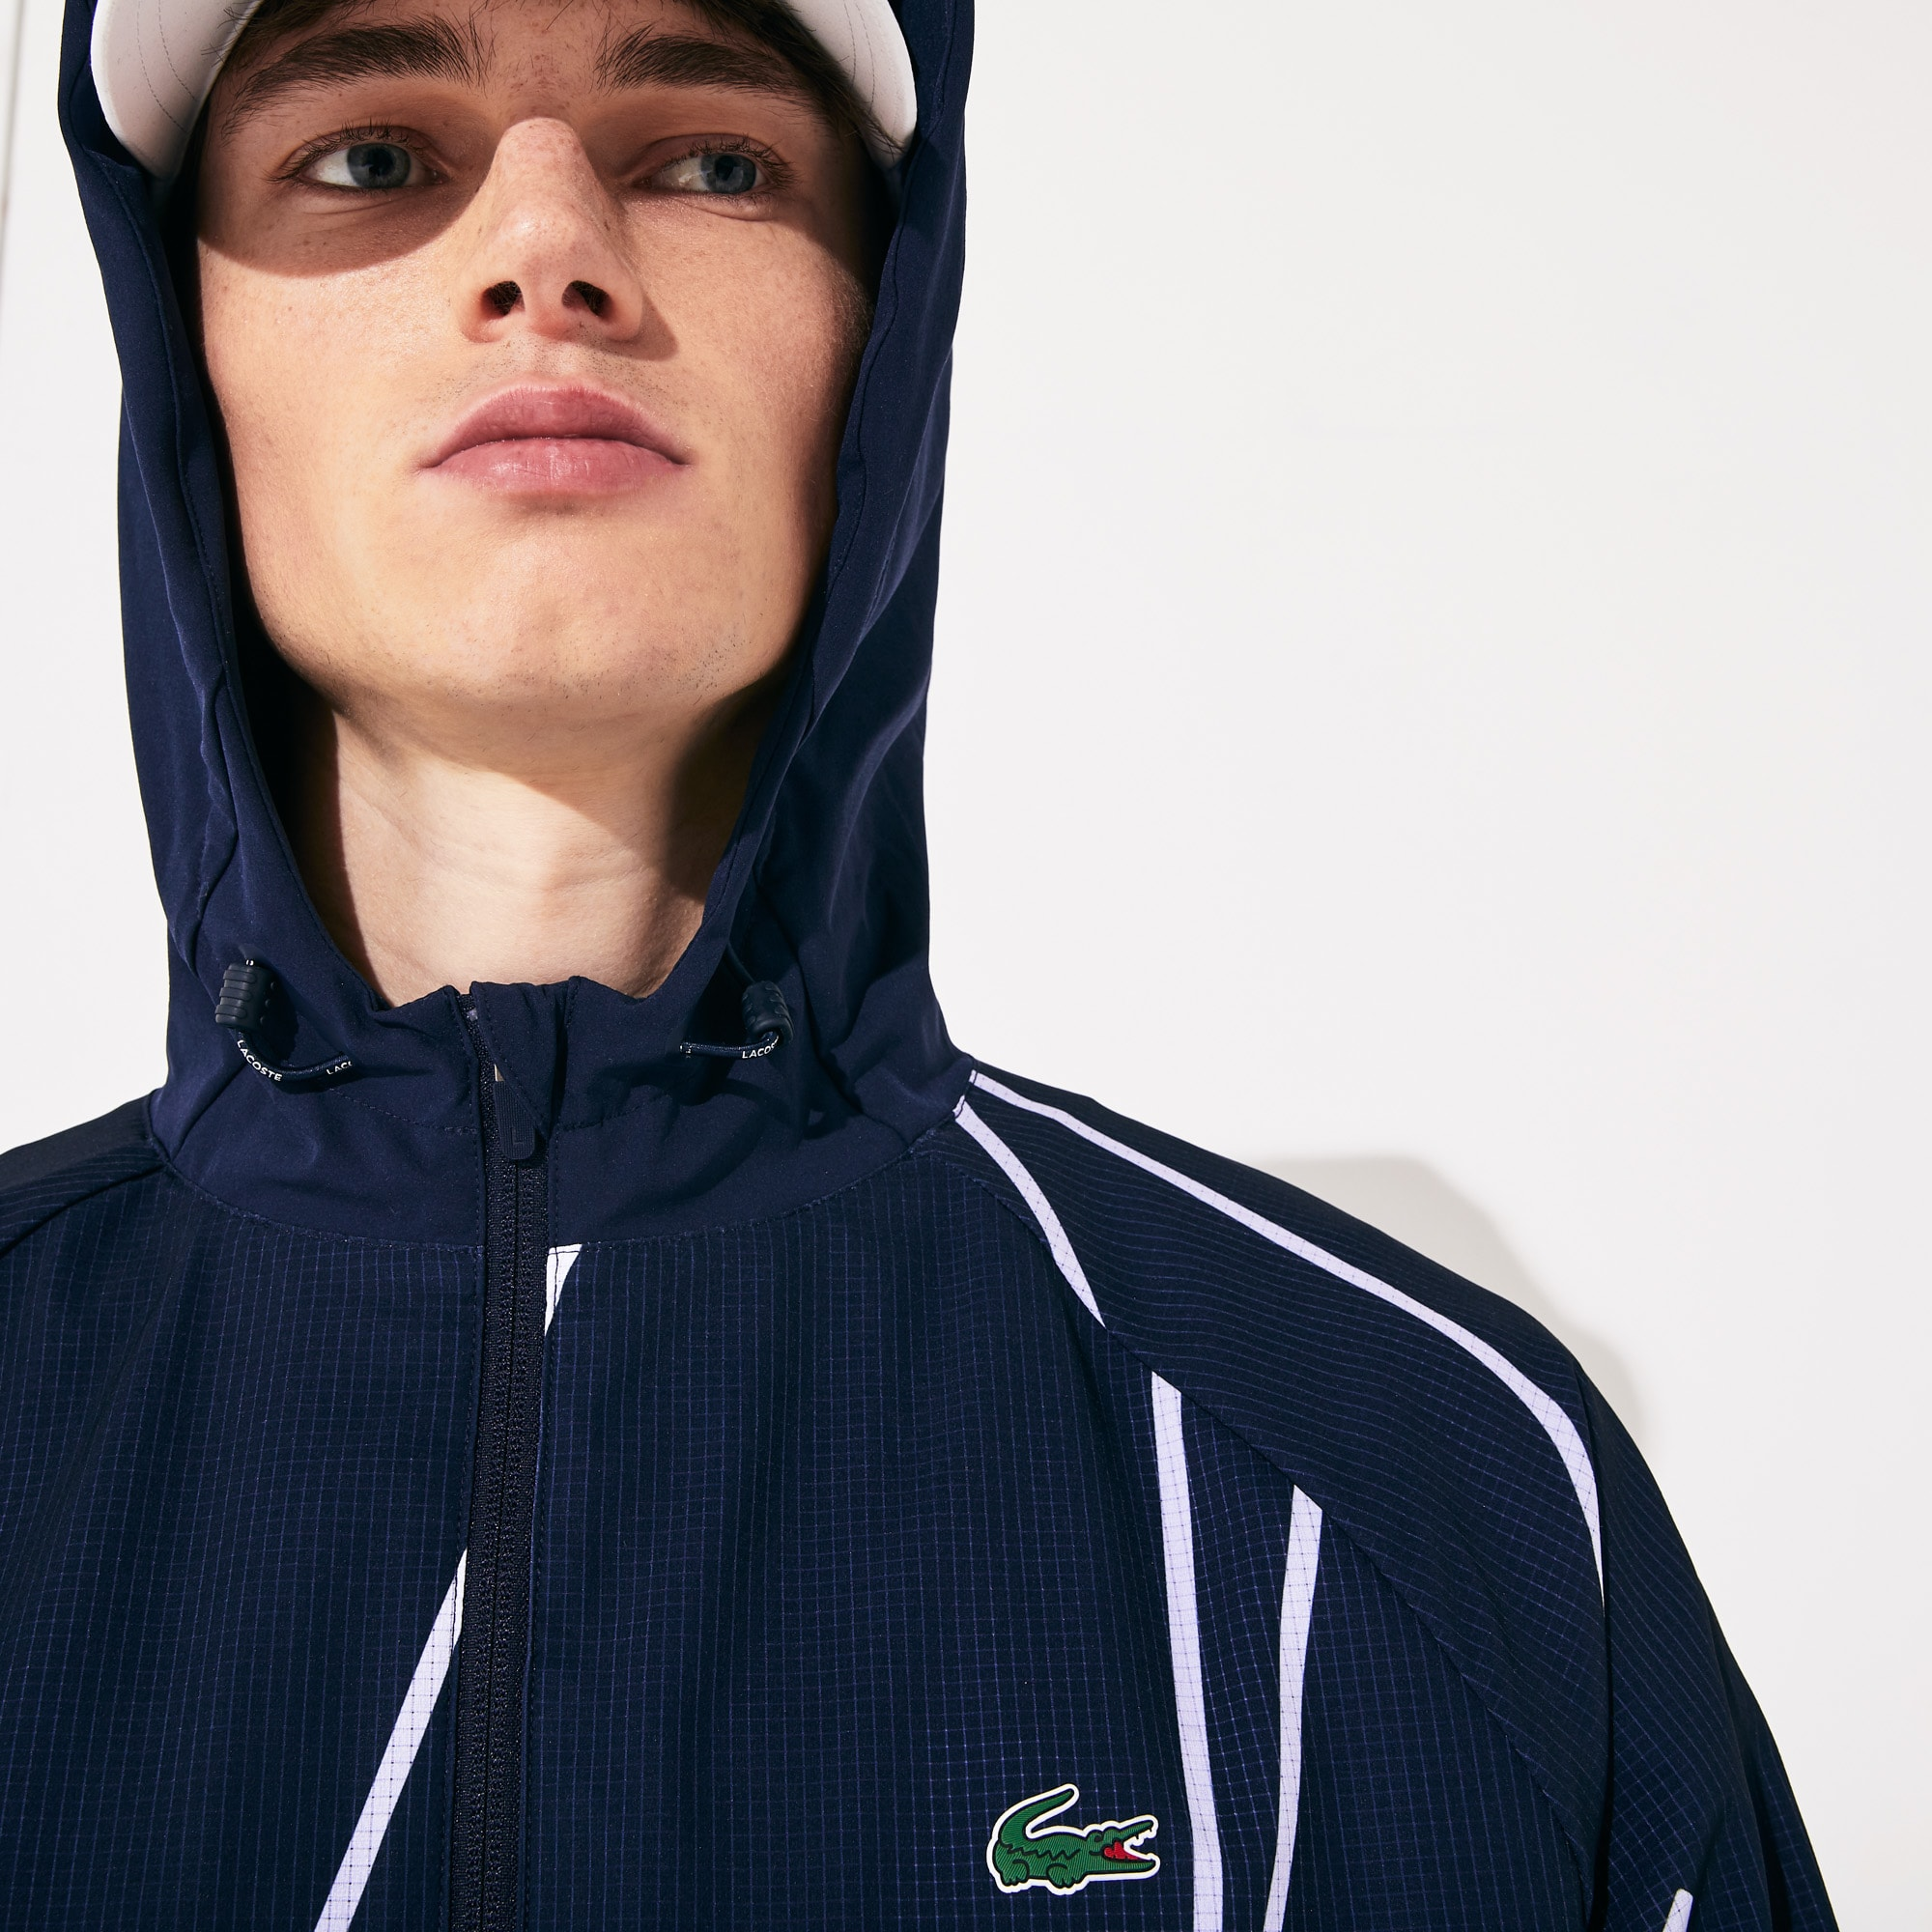 라코스테 스포츠 '프랑스 오픈' 후드 집업 Lacoste Mens SPORT French Open Hooded Zip Jacket,Navy Blue / White